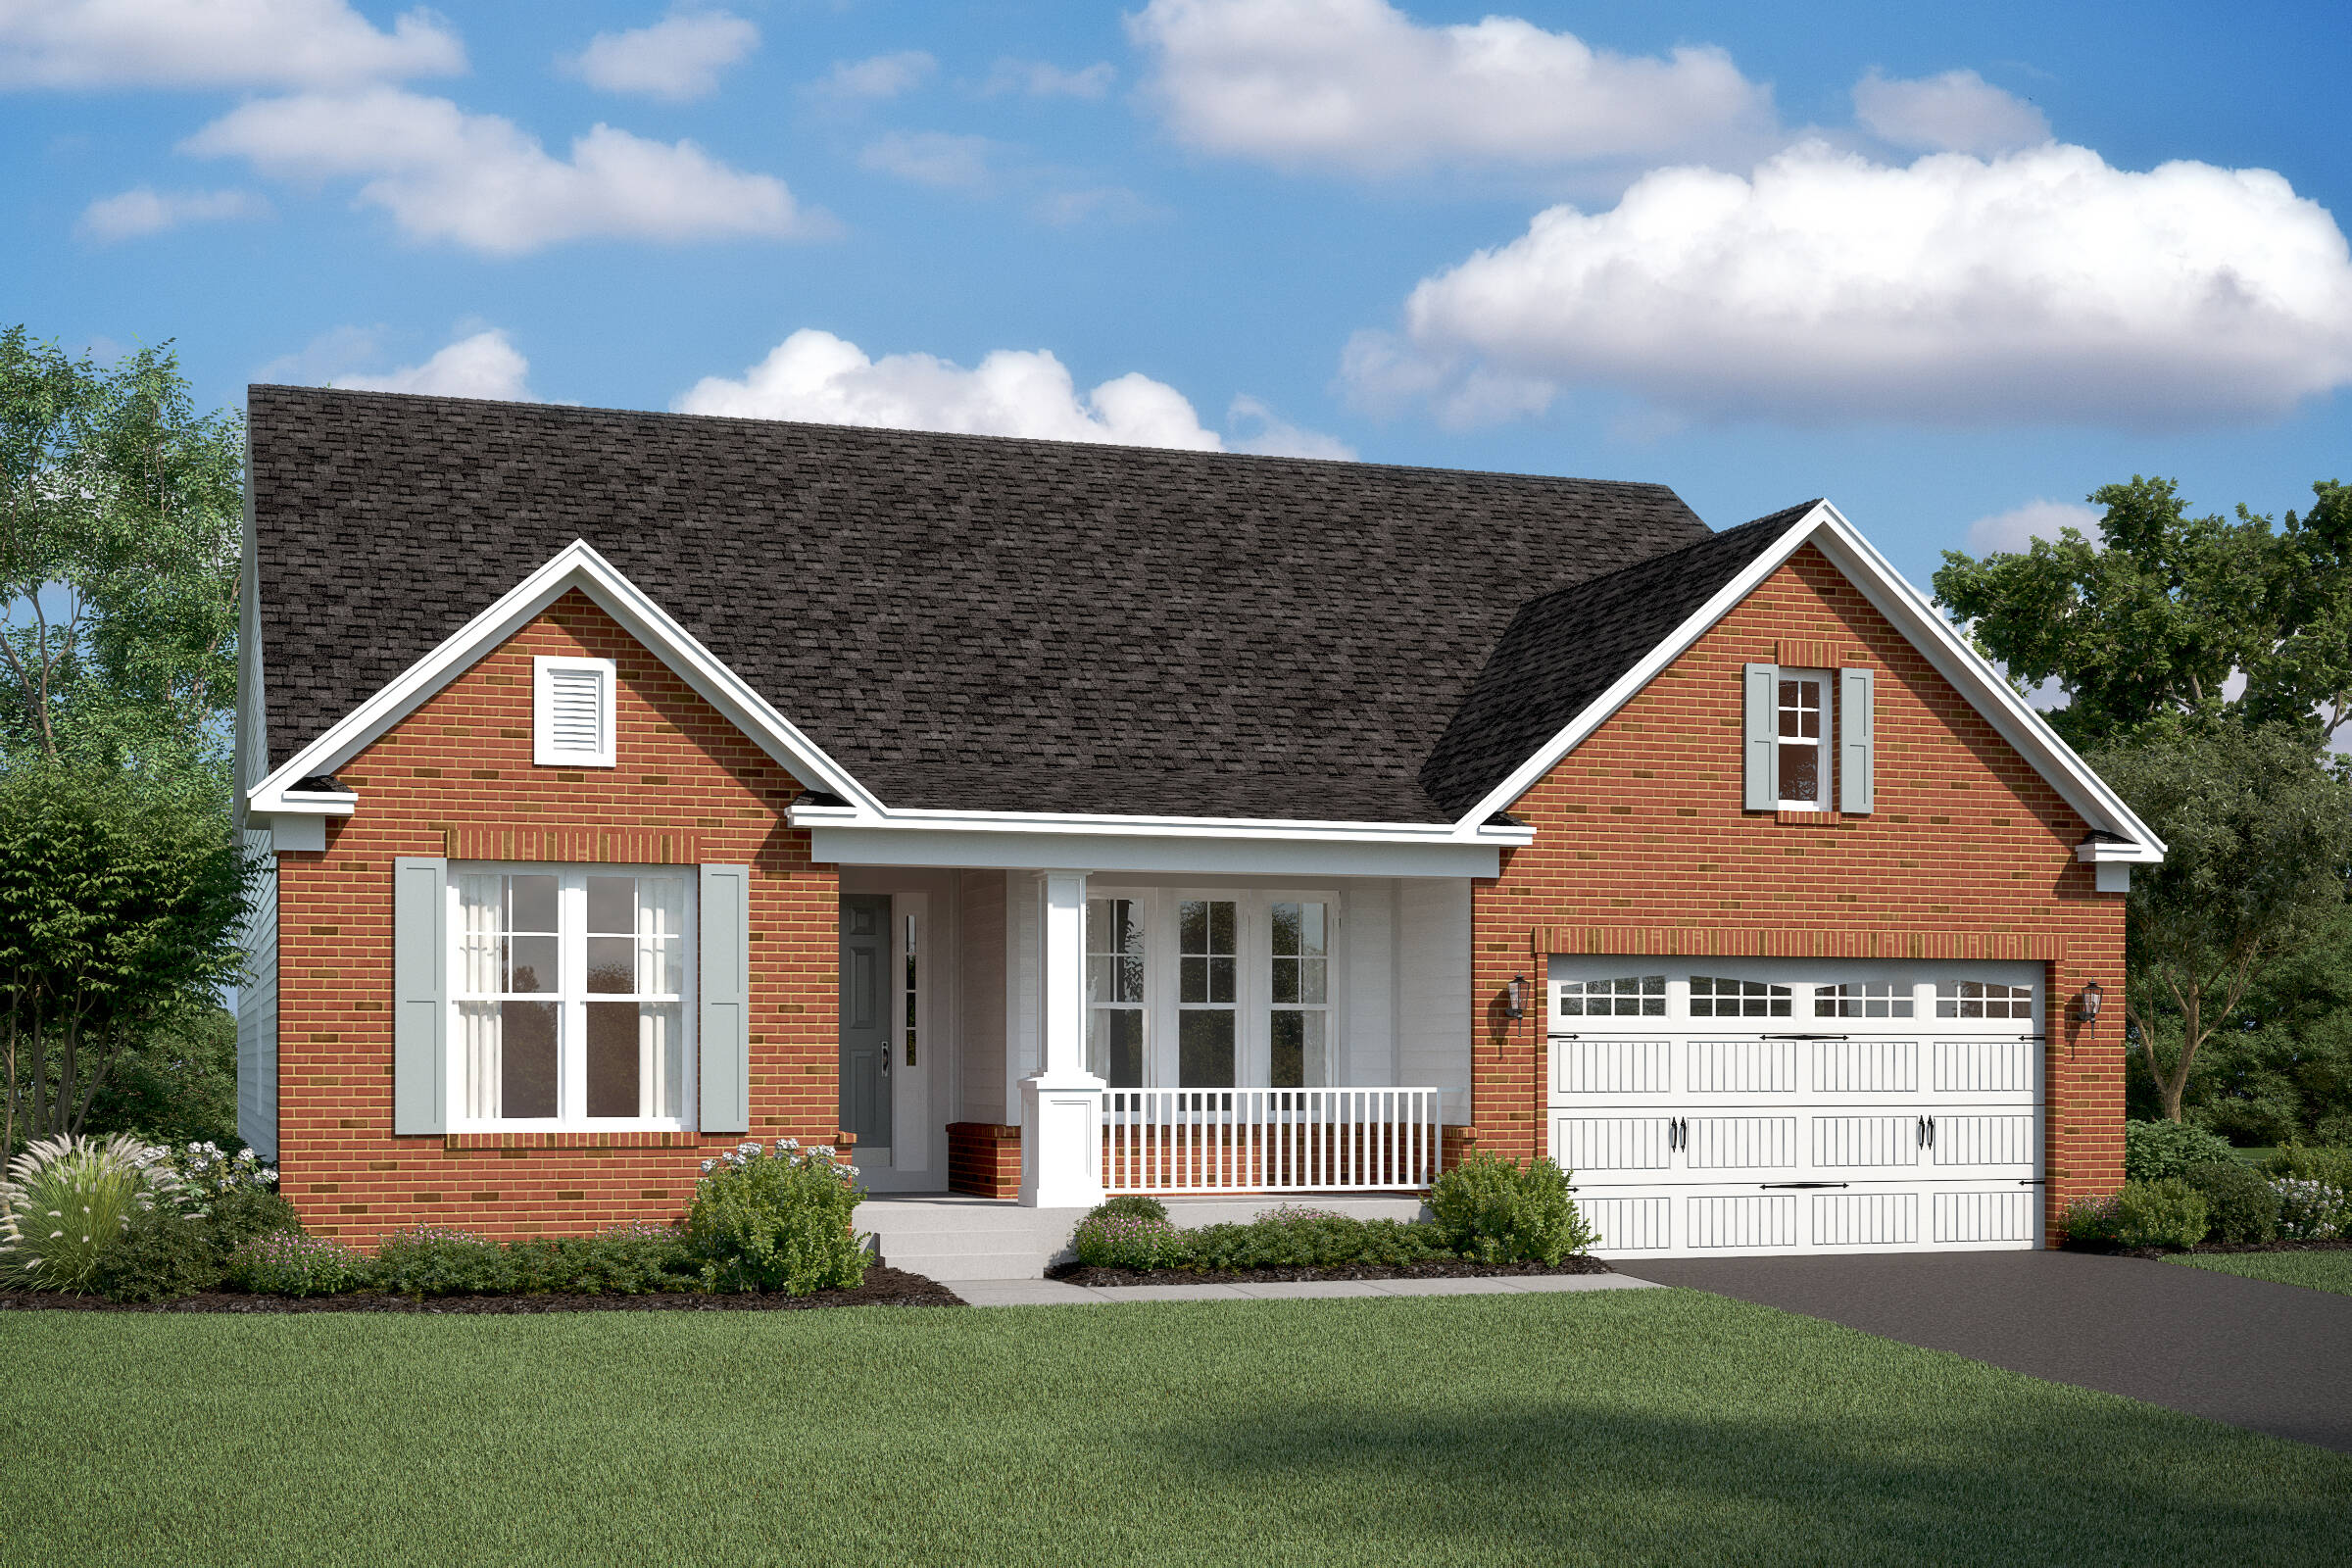 rockford hb new homes at magness farms in maryland